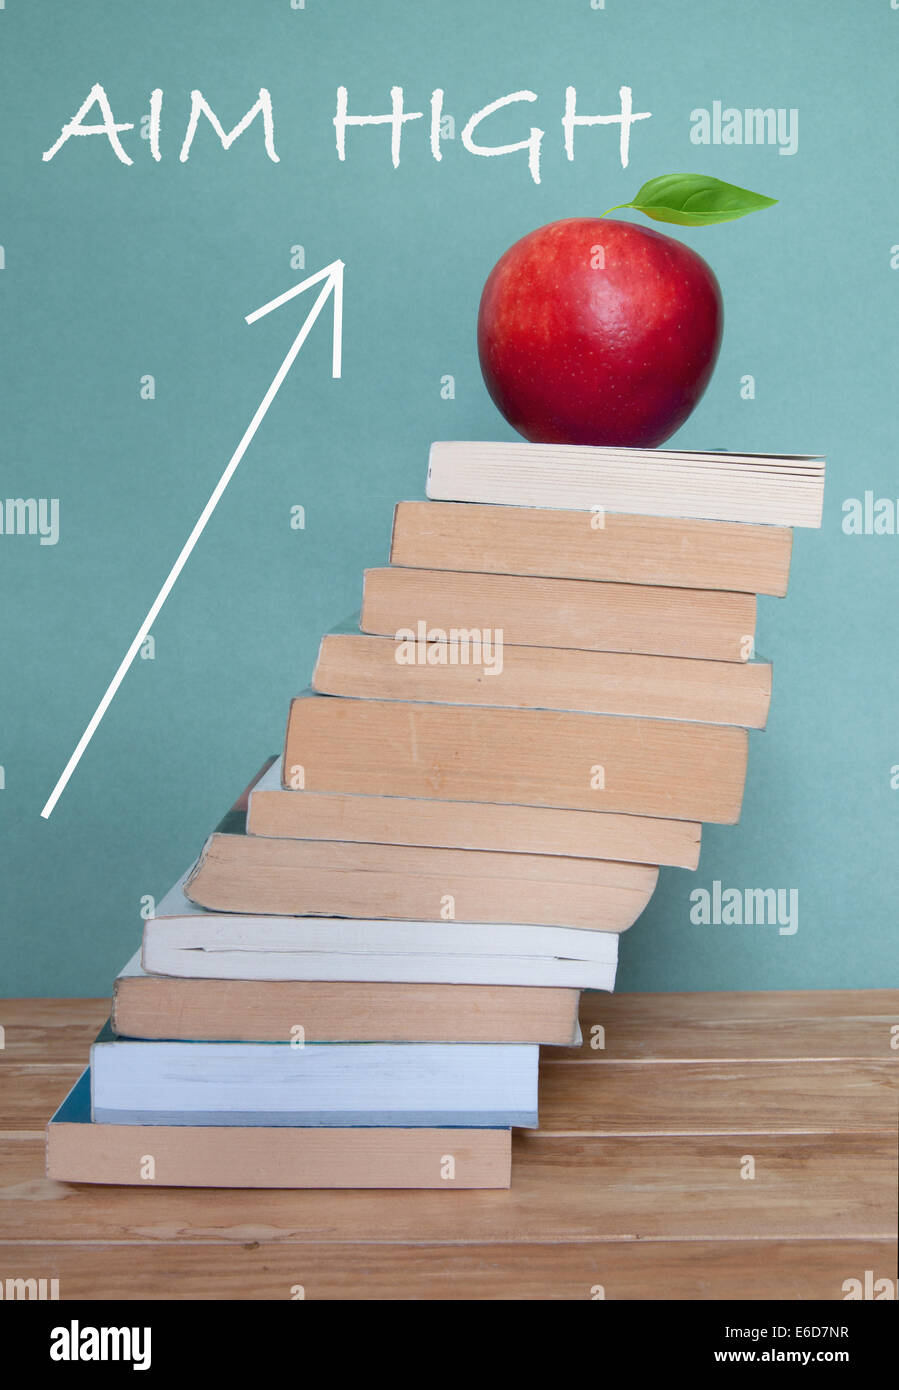 Aim high in education Stock Photo